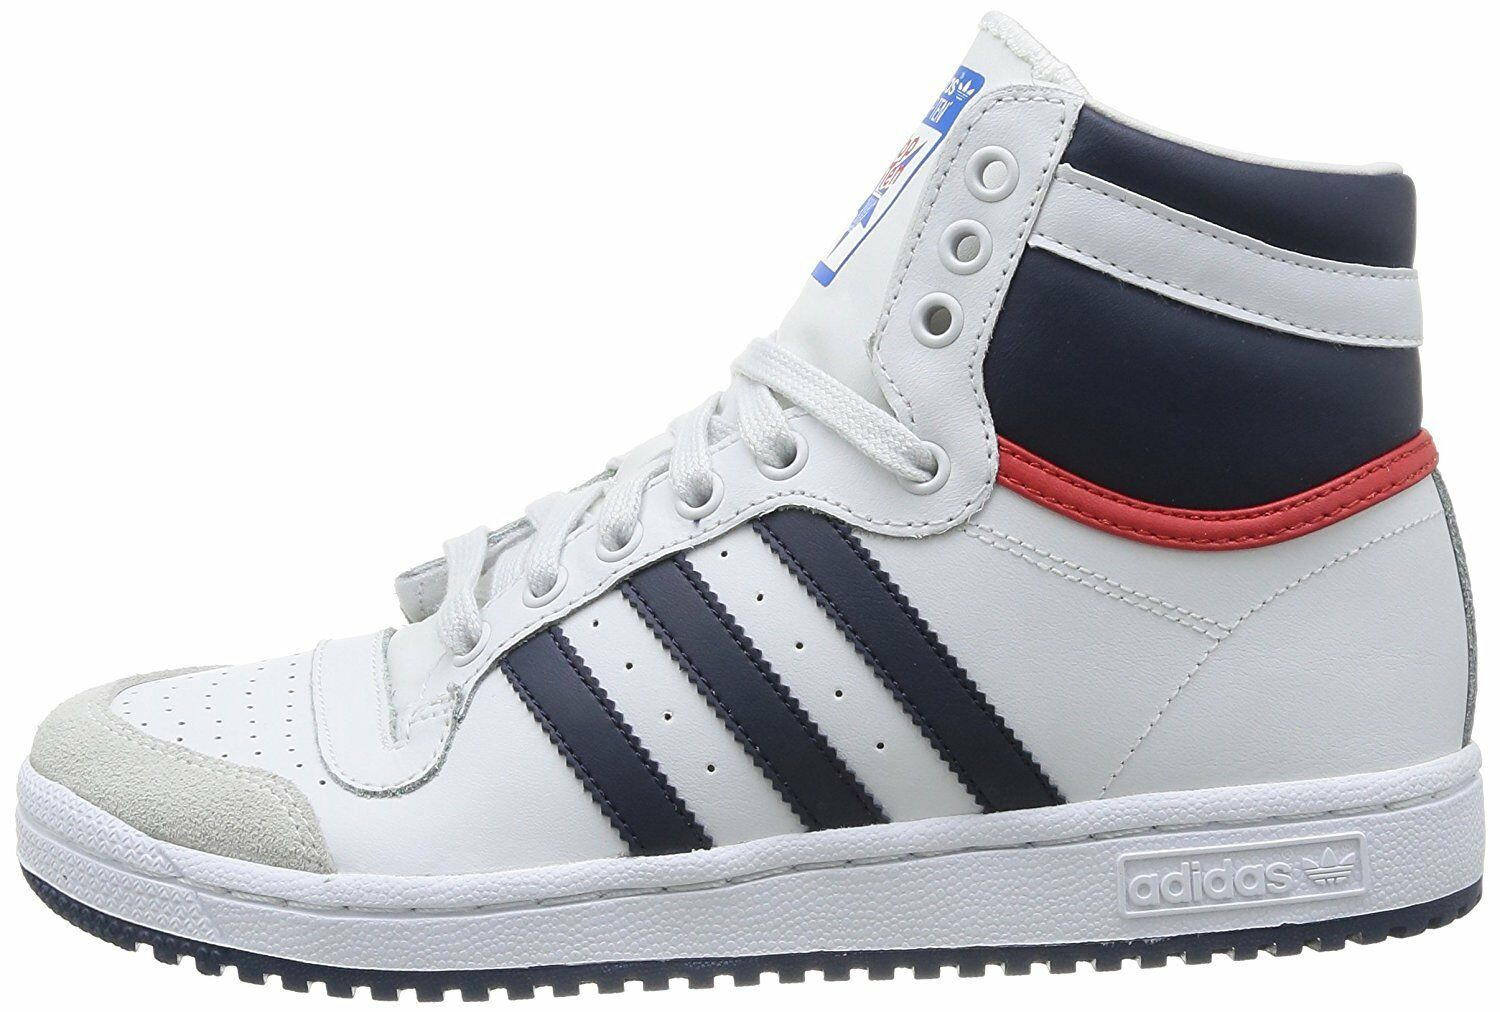 Schuhe N. UK 37 1/3 UK N. 4 1/2 CM 23 ADIDAS TOP TEN HI YODA 3 STAR WARS ART. D74481 538baf